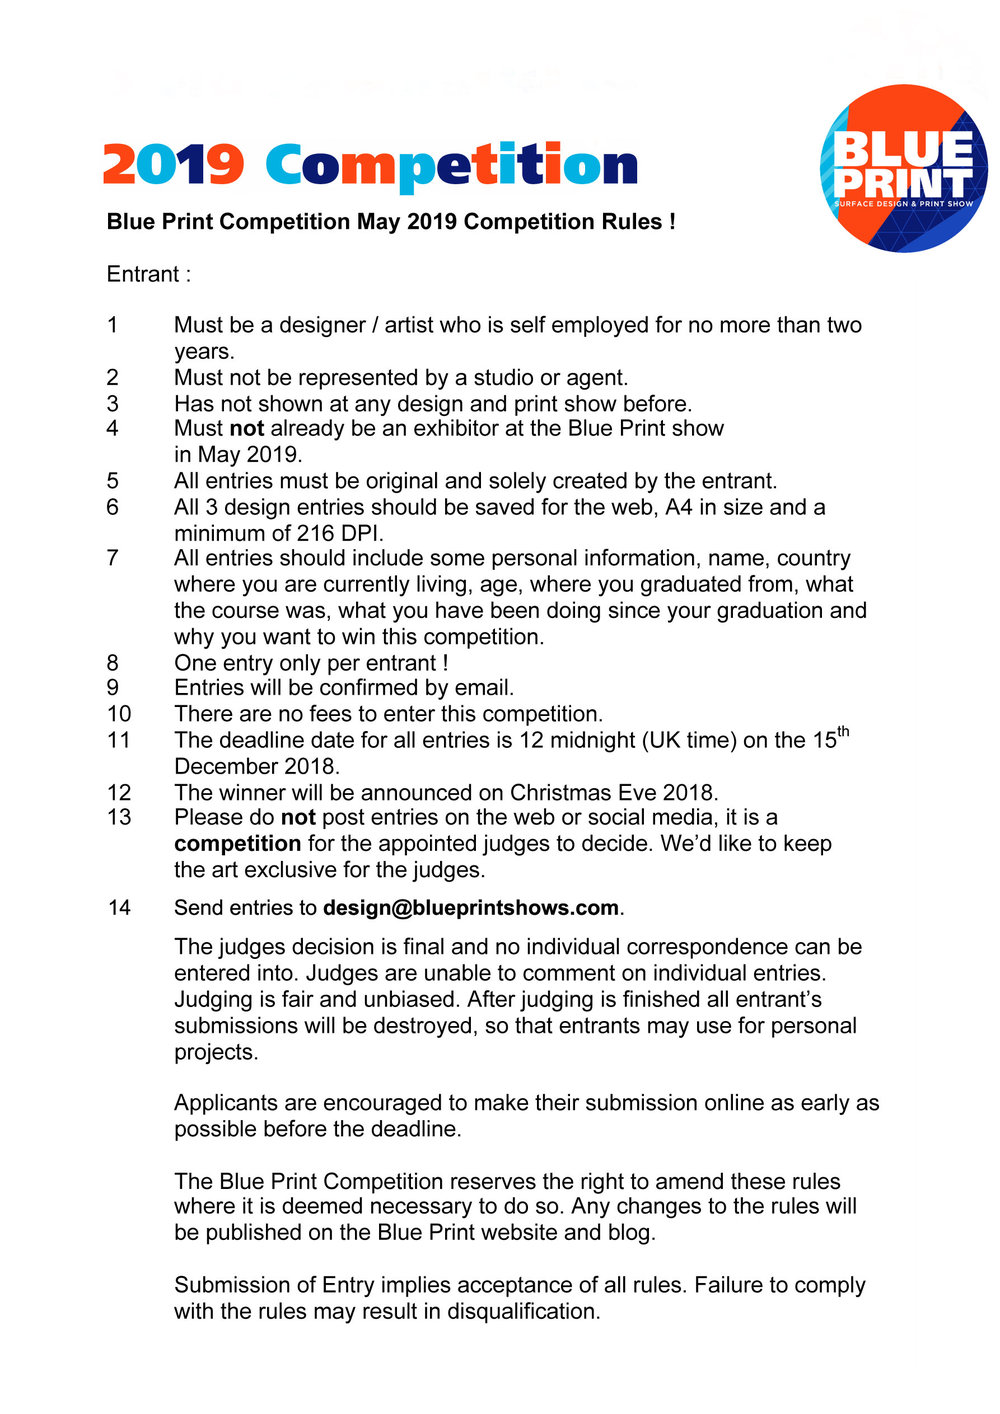 BP-VIII-Comp-Rules-2.jpg